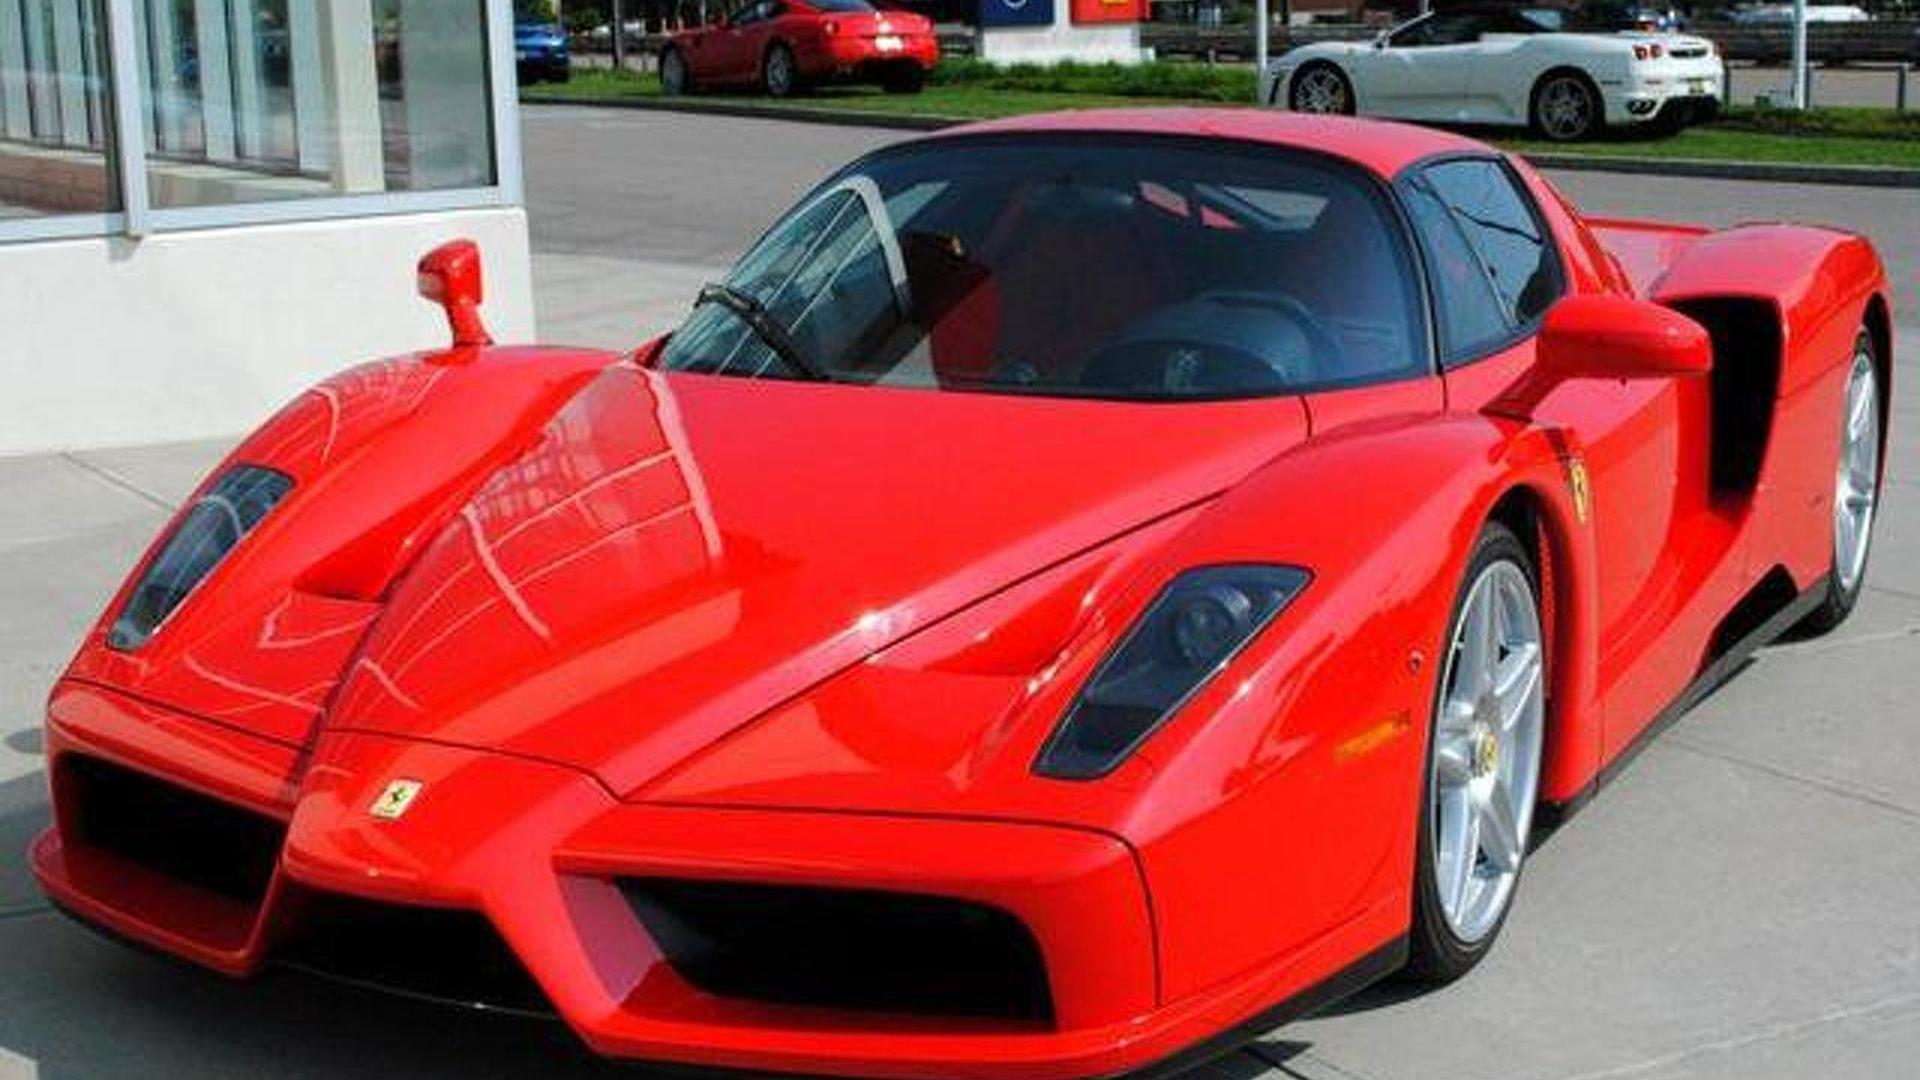 Private island owner wants to trade it for a Ferrari Enzo